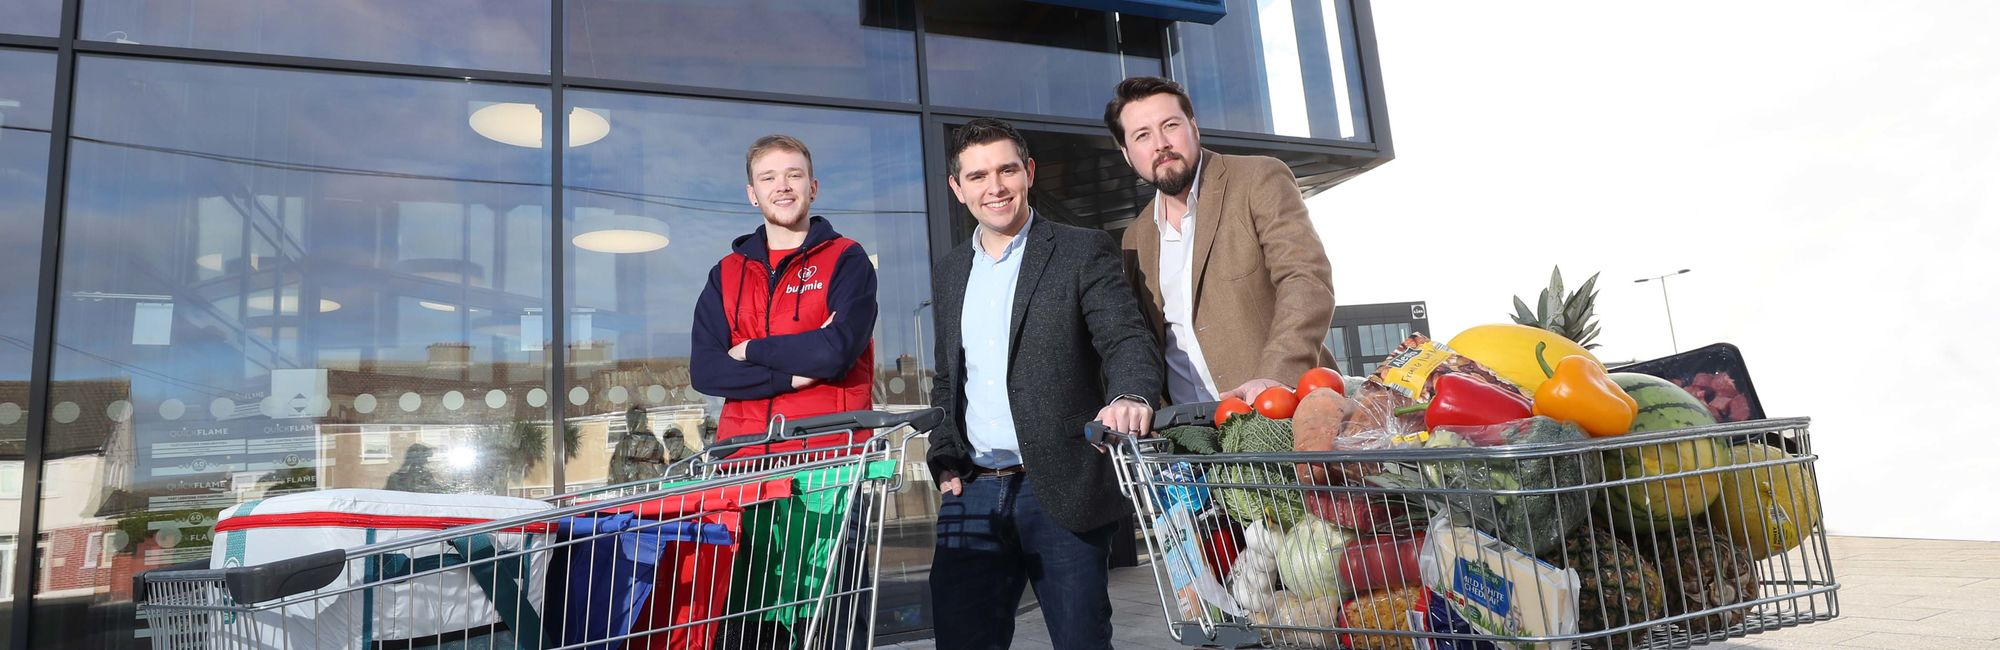 lidl-2019-buymie-delivery-shopping-grocery-online-app